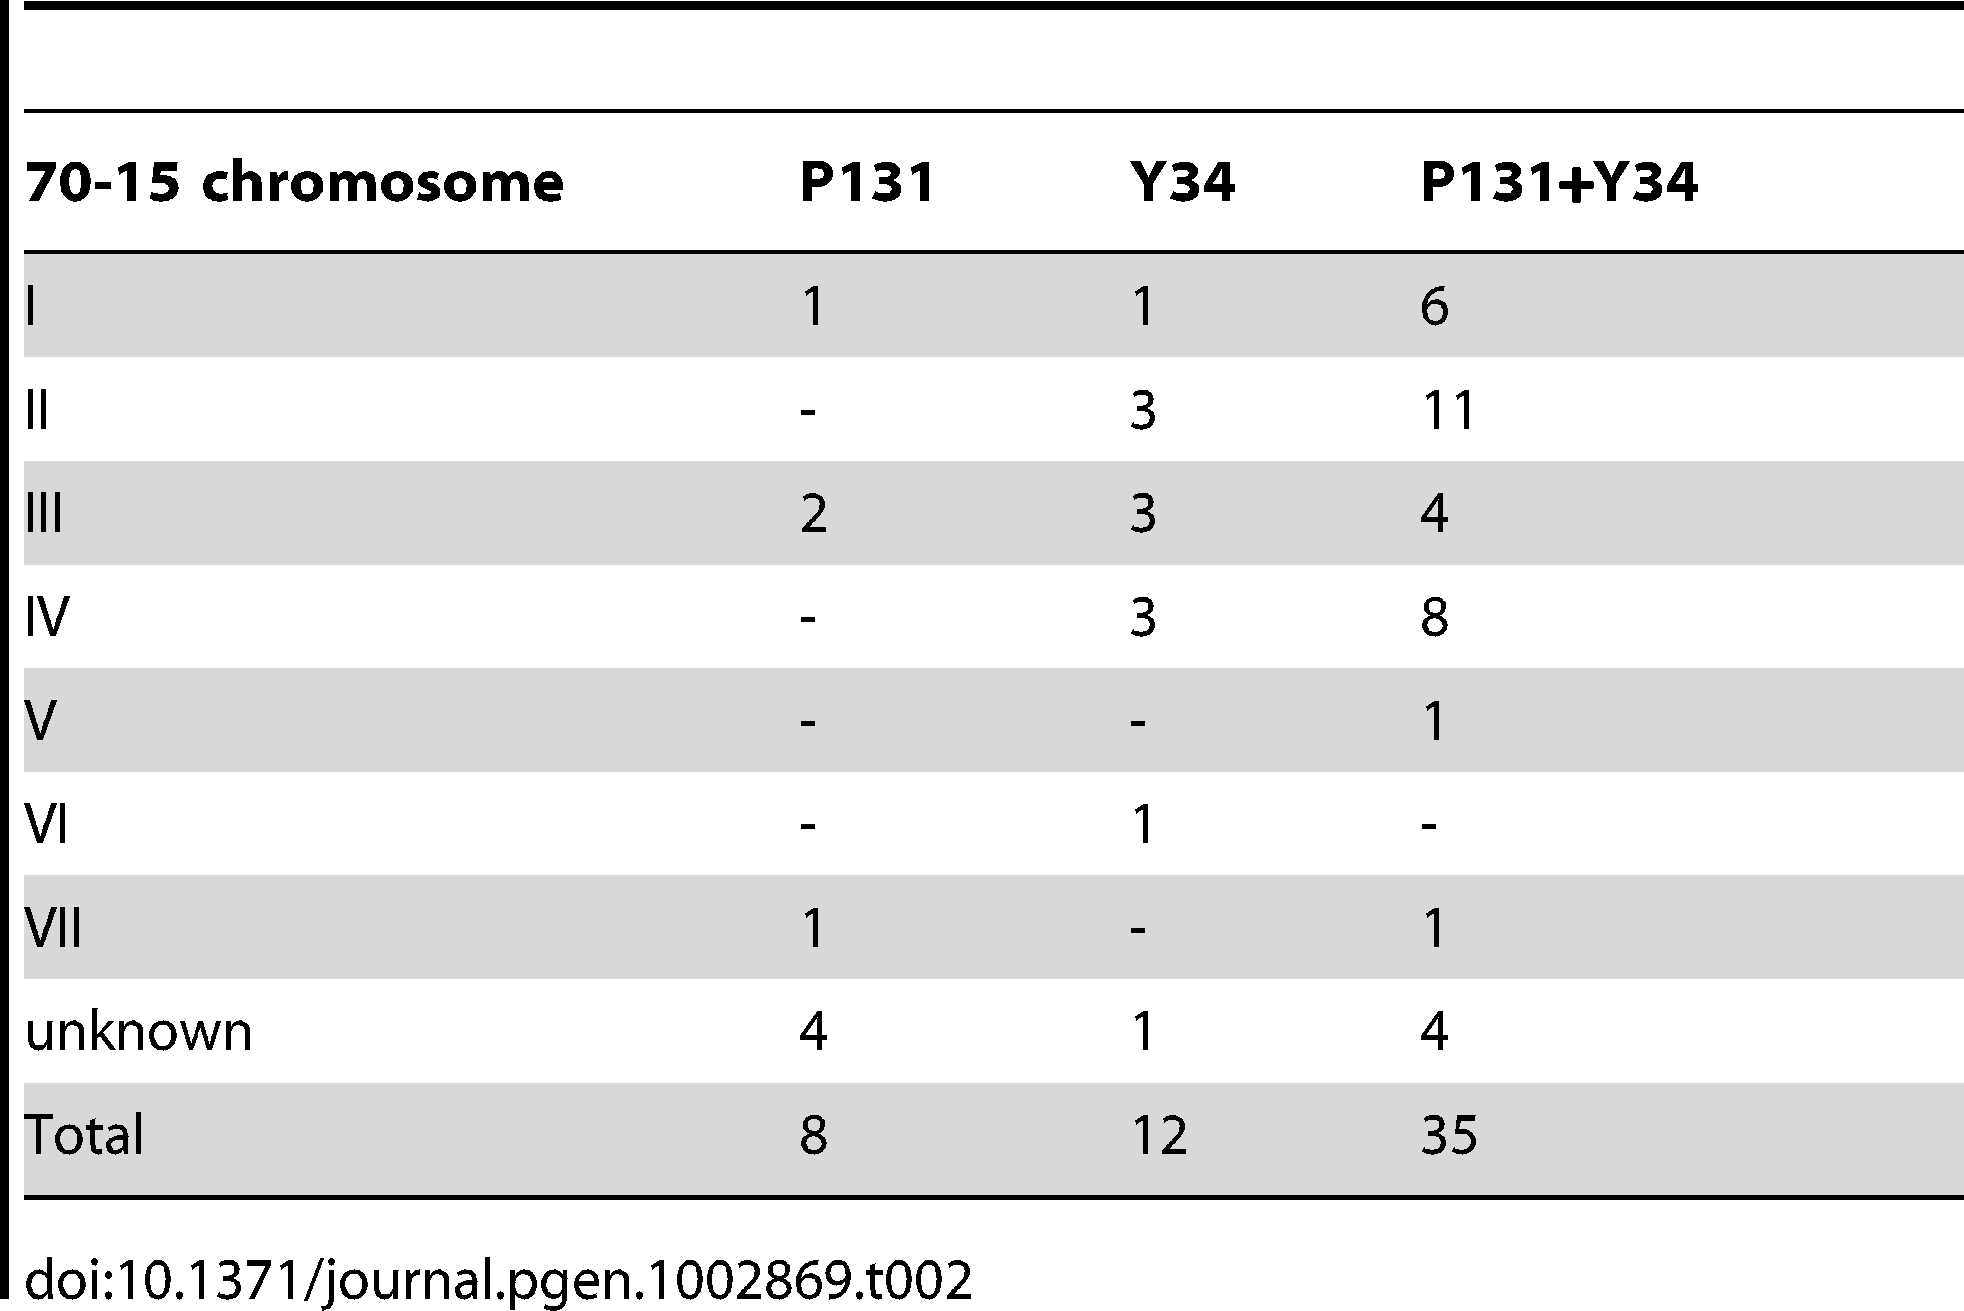 Gaps in the genome of isolate 70-15 filled with sequences from the field isolates P131 and/or Y34.